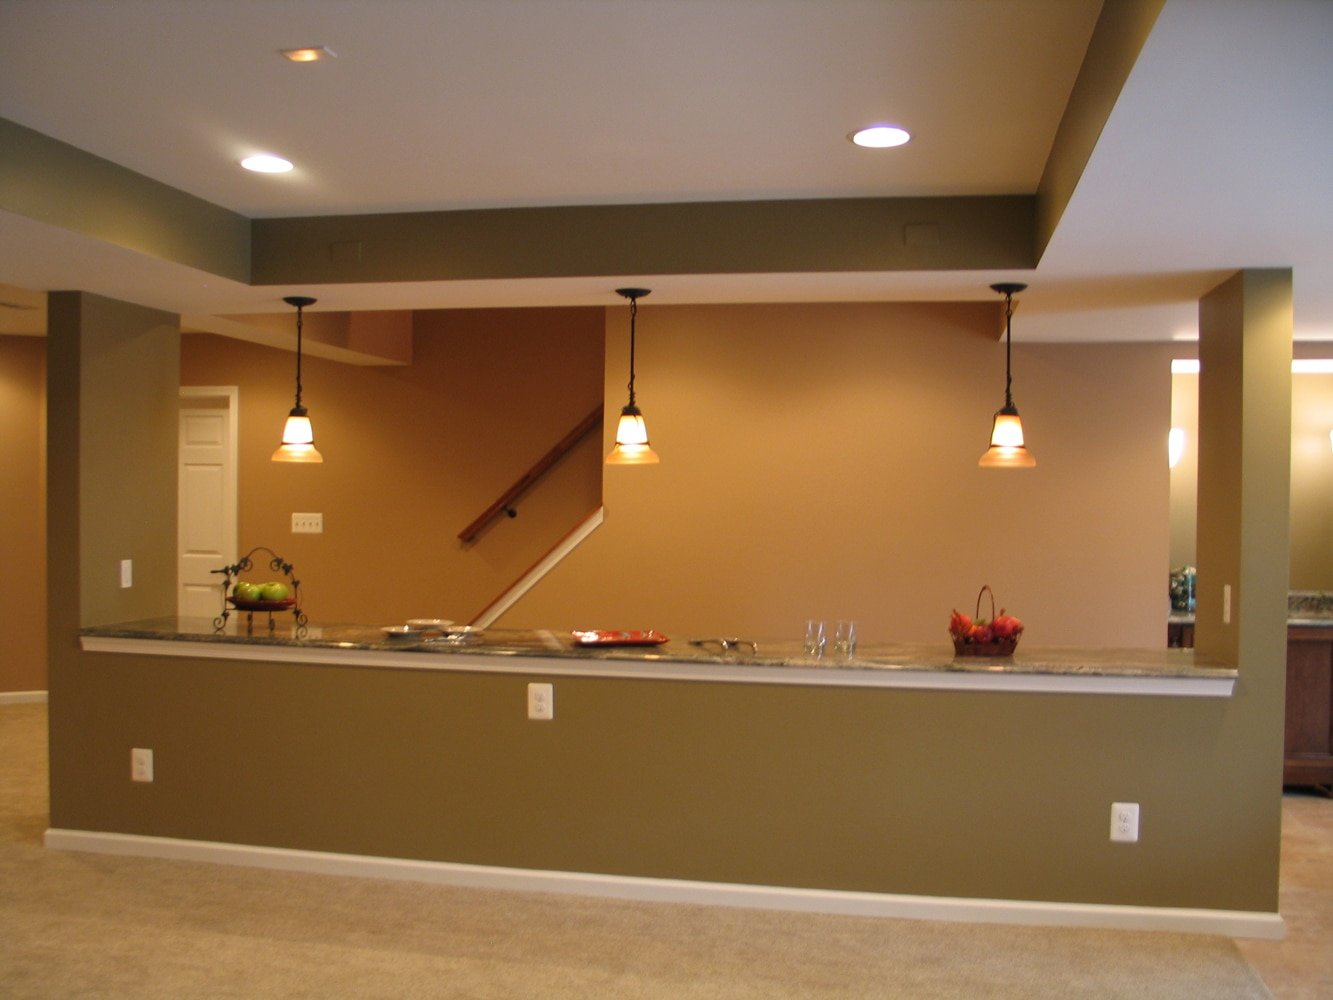 Finished Basement Remodel In Fallston With Unique